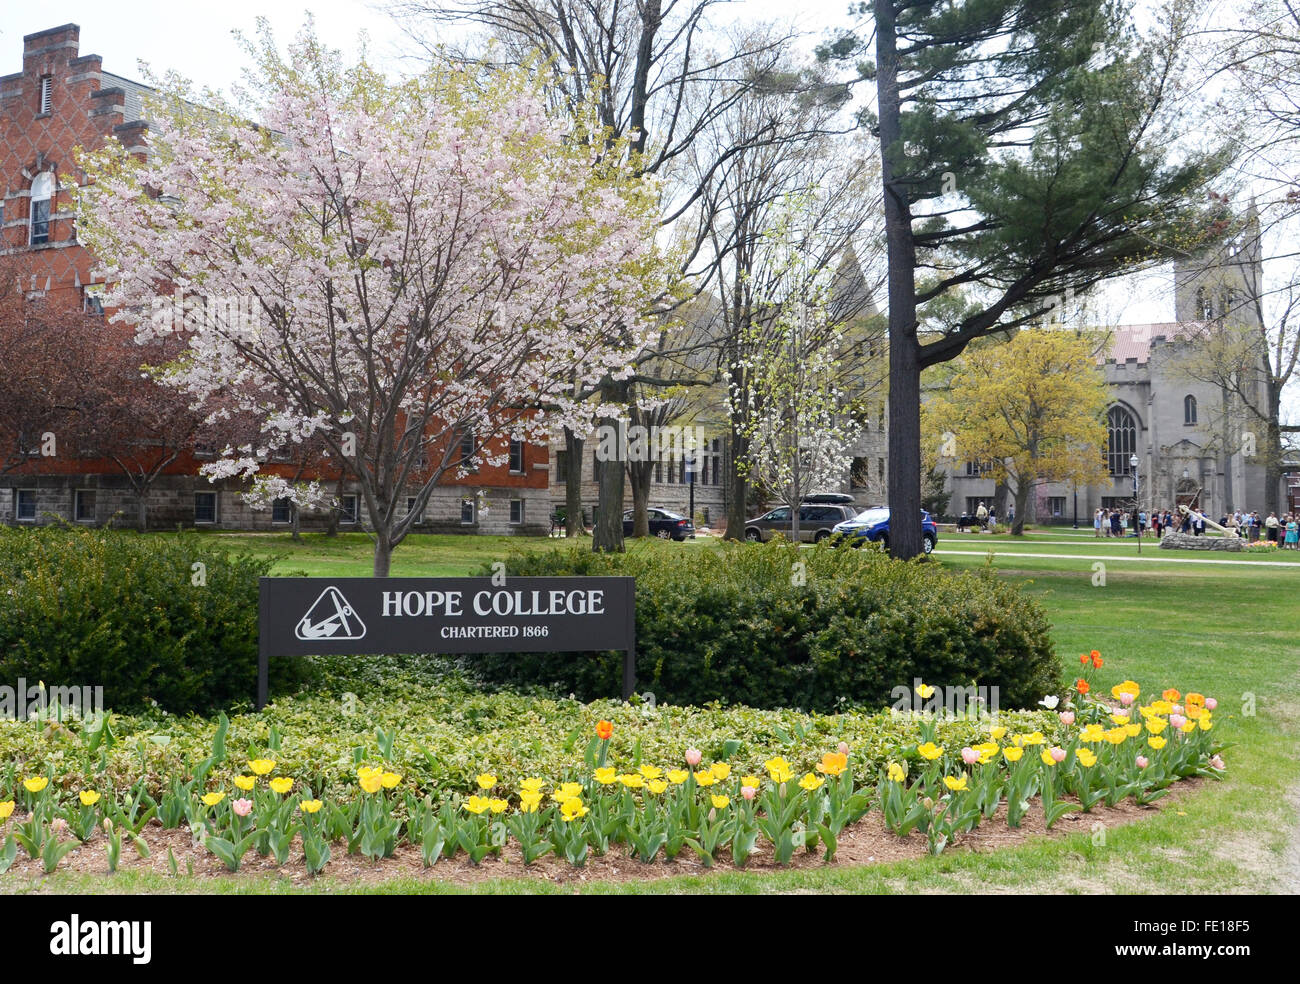 HOLLAND, MI - MAY 3: Hope College, whose campus is shown here, graduated its largest graduating class of 766 on - Stock Image